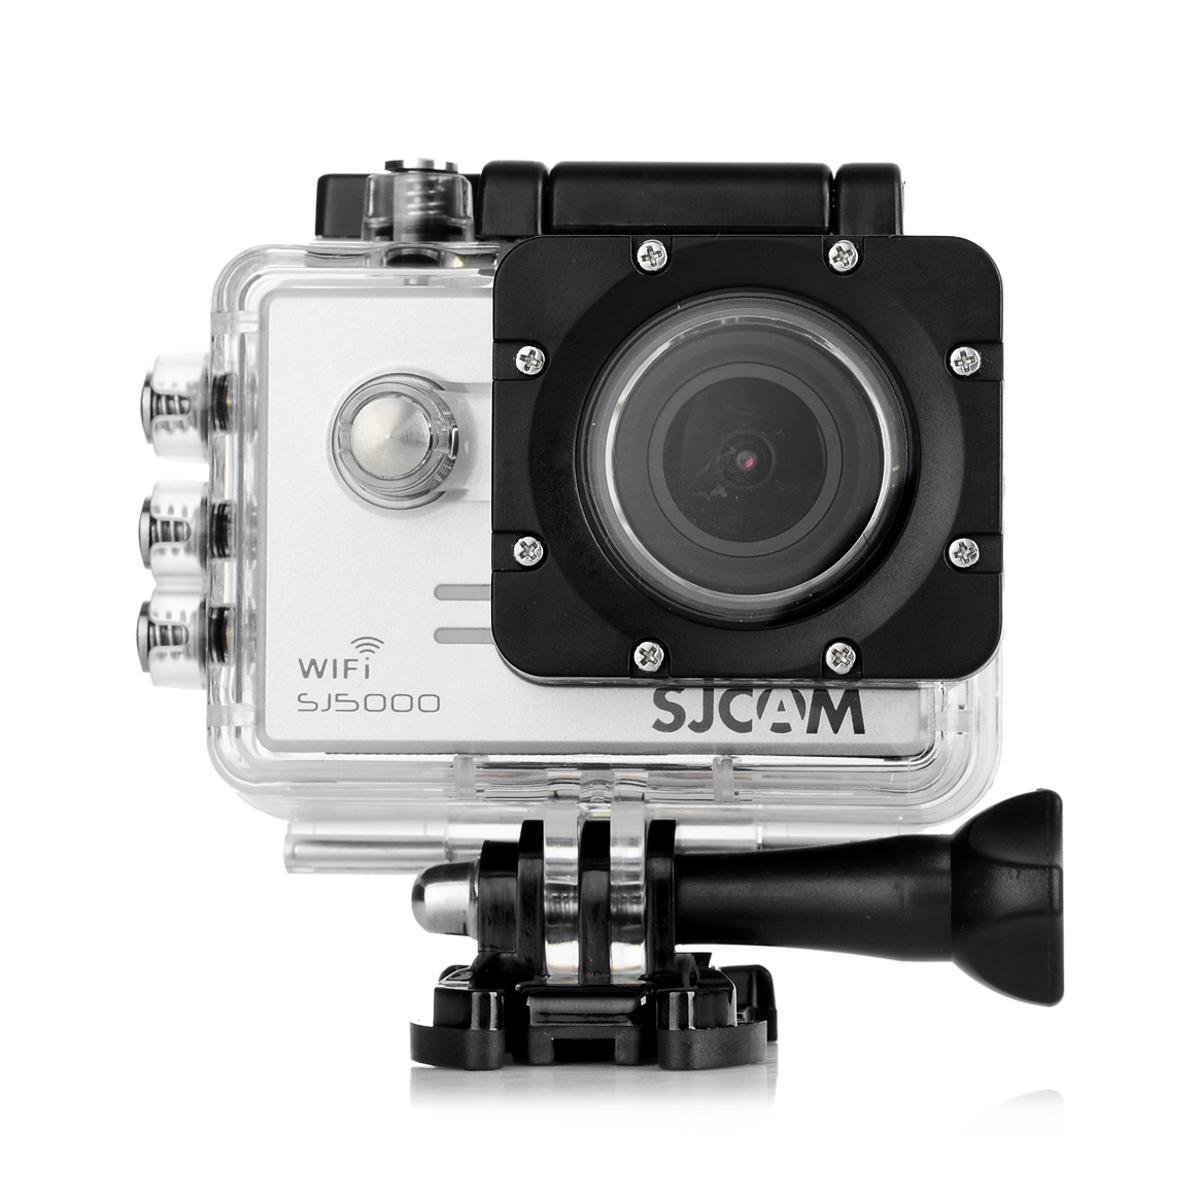 Original SJCAM SJ5000 WiFi Action HD Camera 14MP Novatek 96655 1080P Waterproof Silver